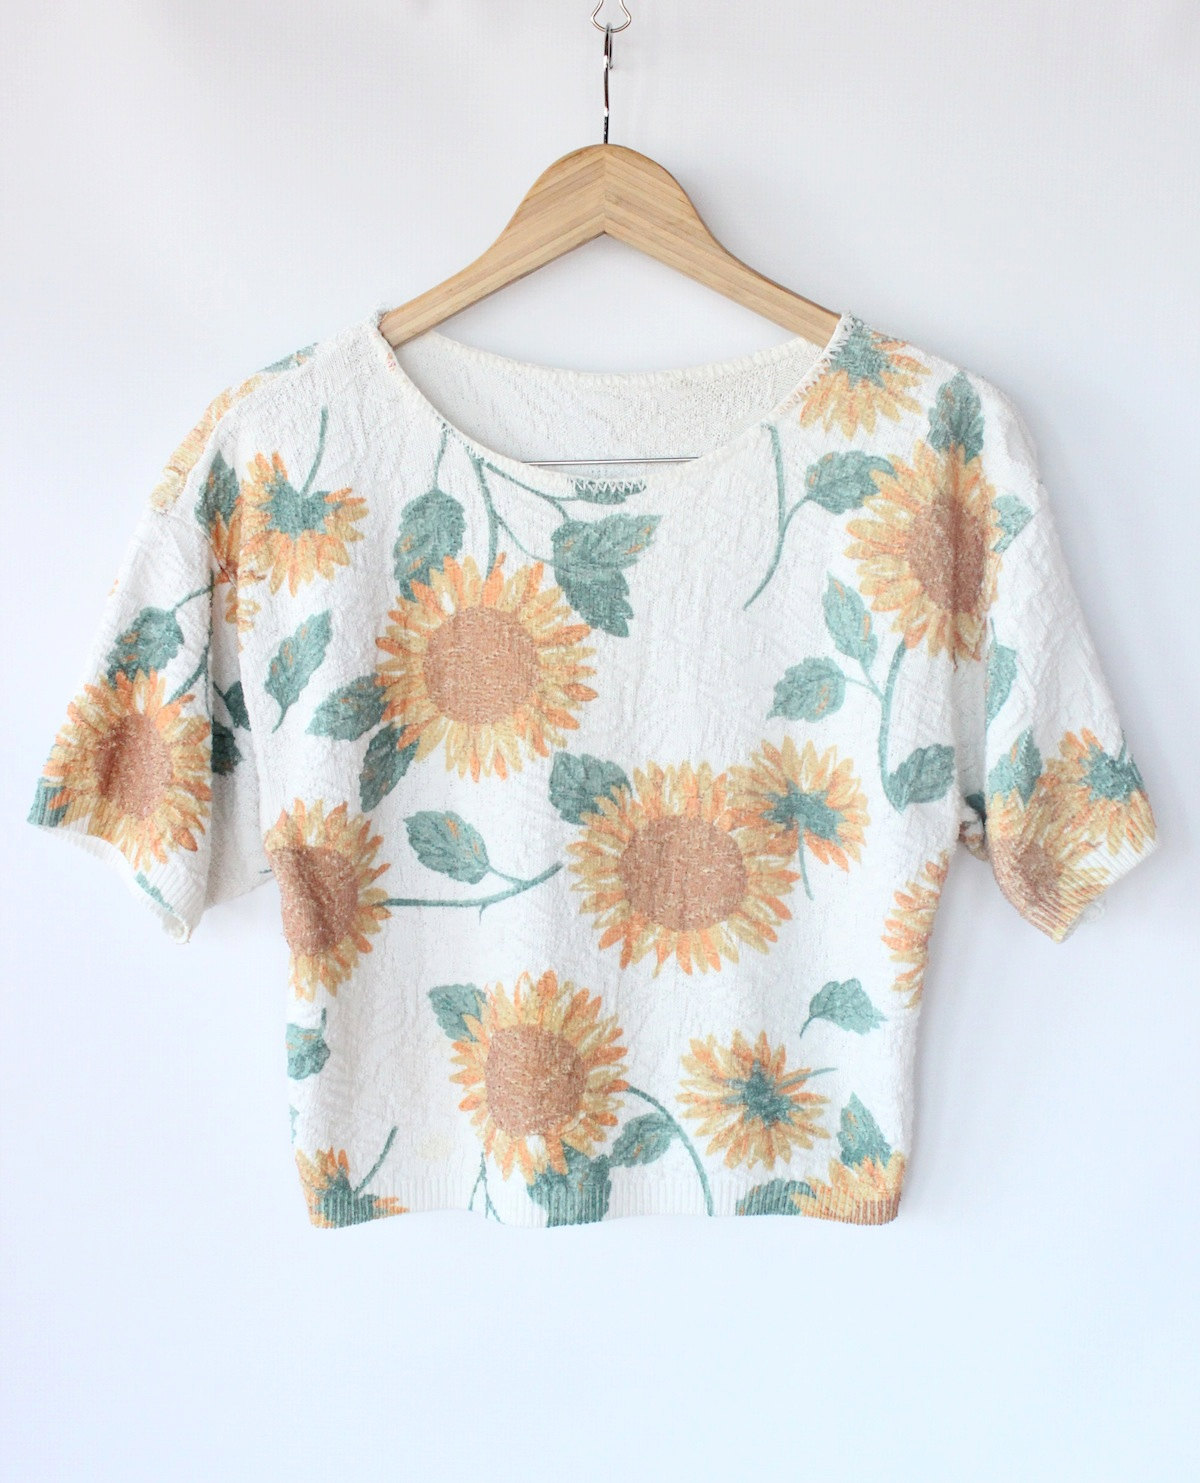 Vintage 80s sunflower print knit cropped top // short sleeve spring floral sweater